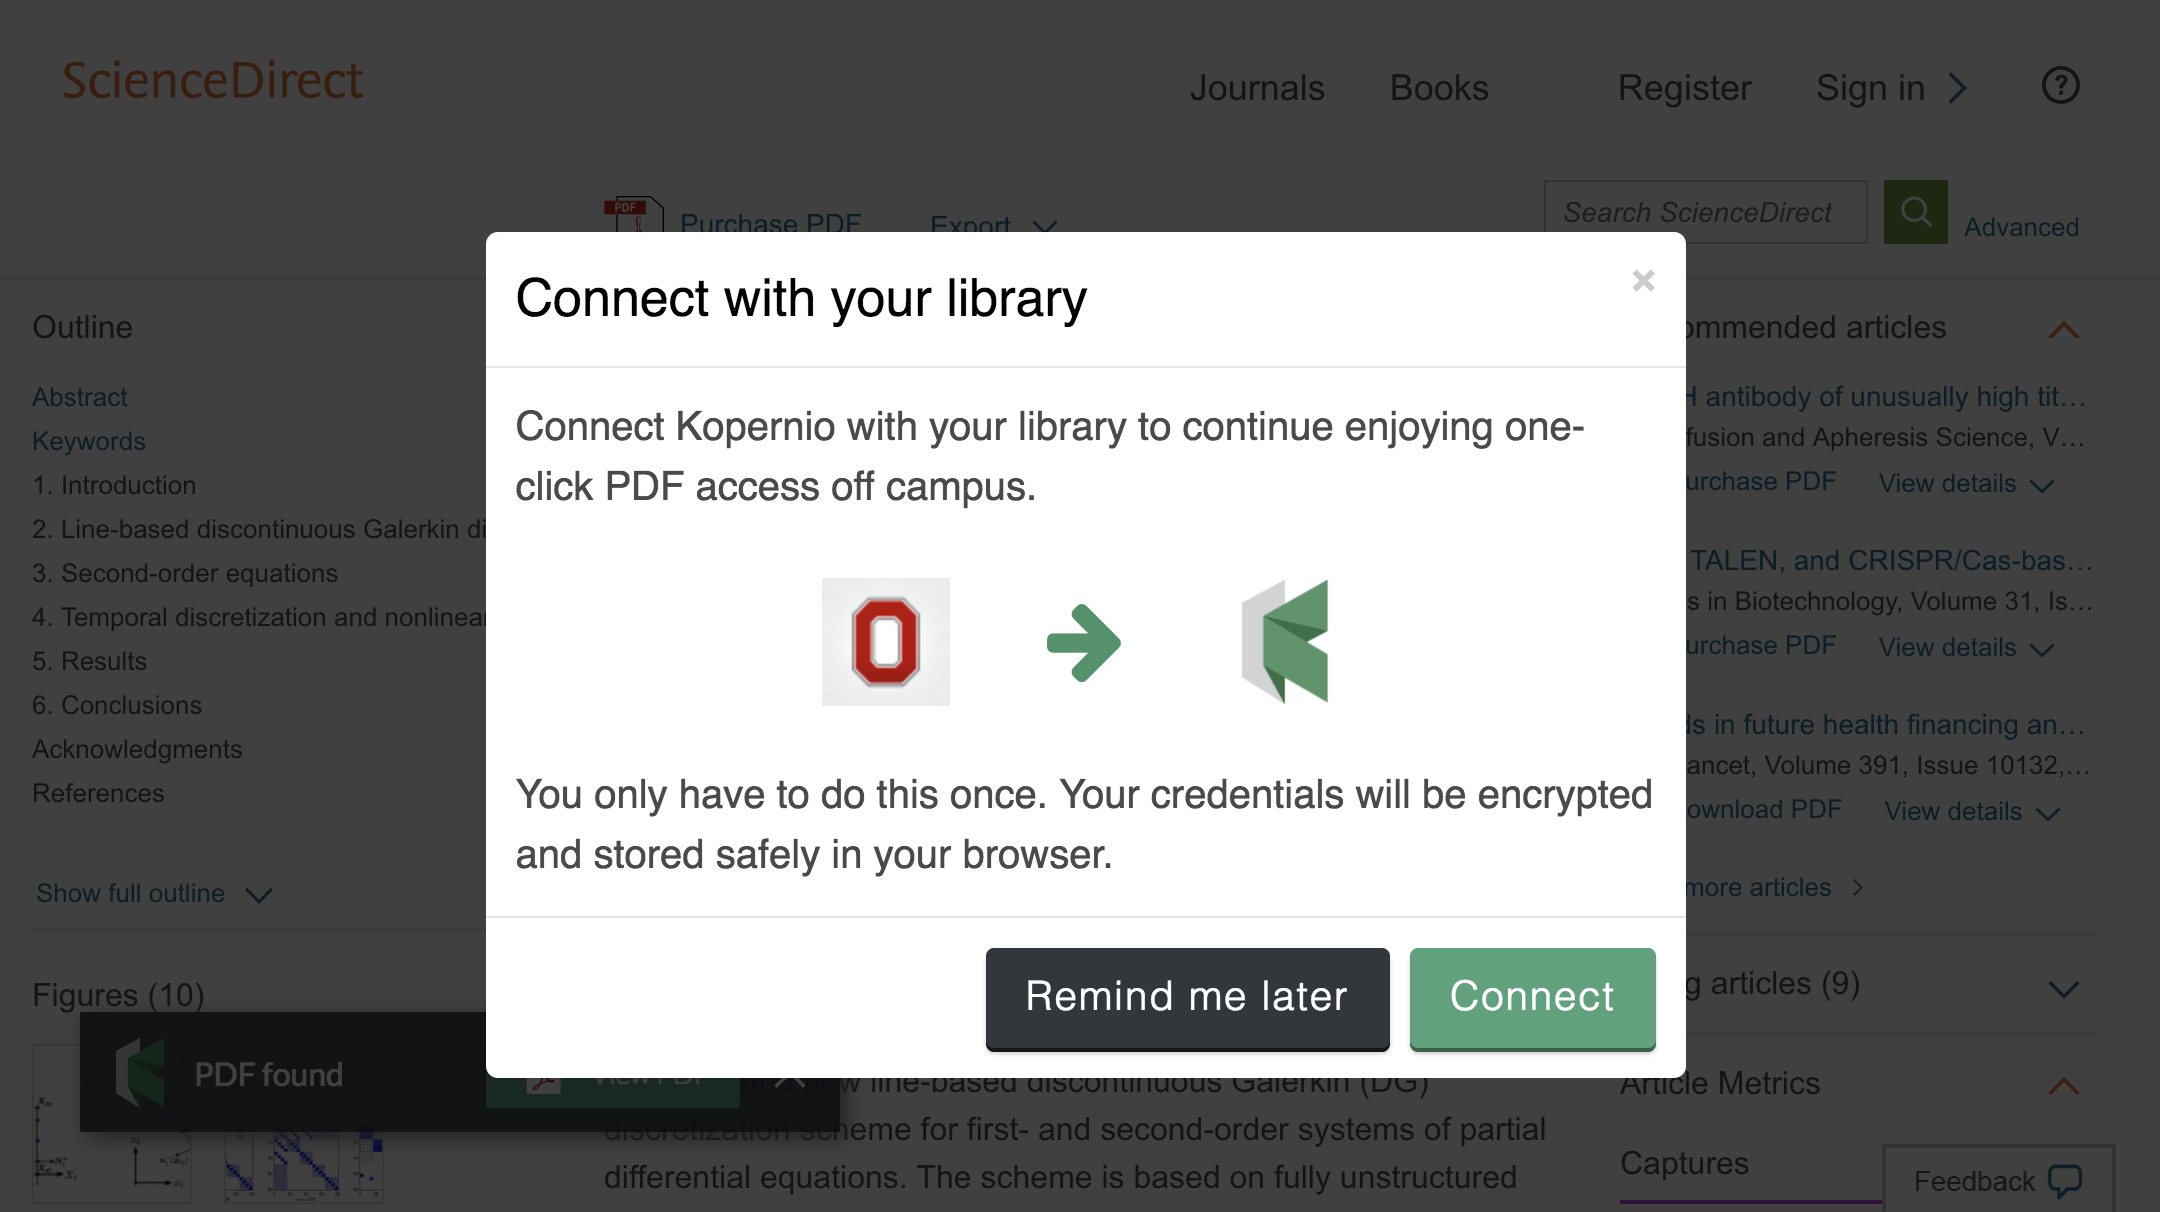 Connect to library prompt for off-campus access to Ohio State University e-resources.